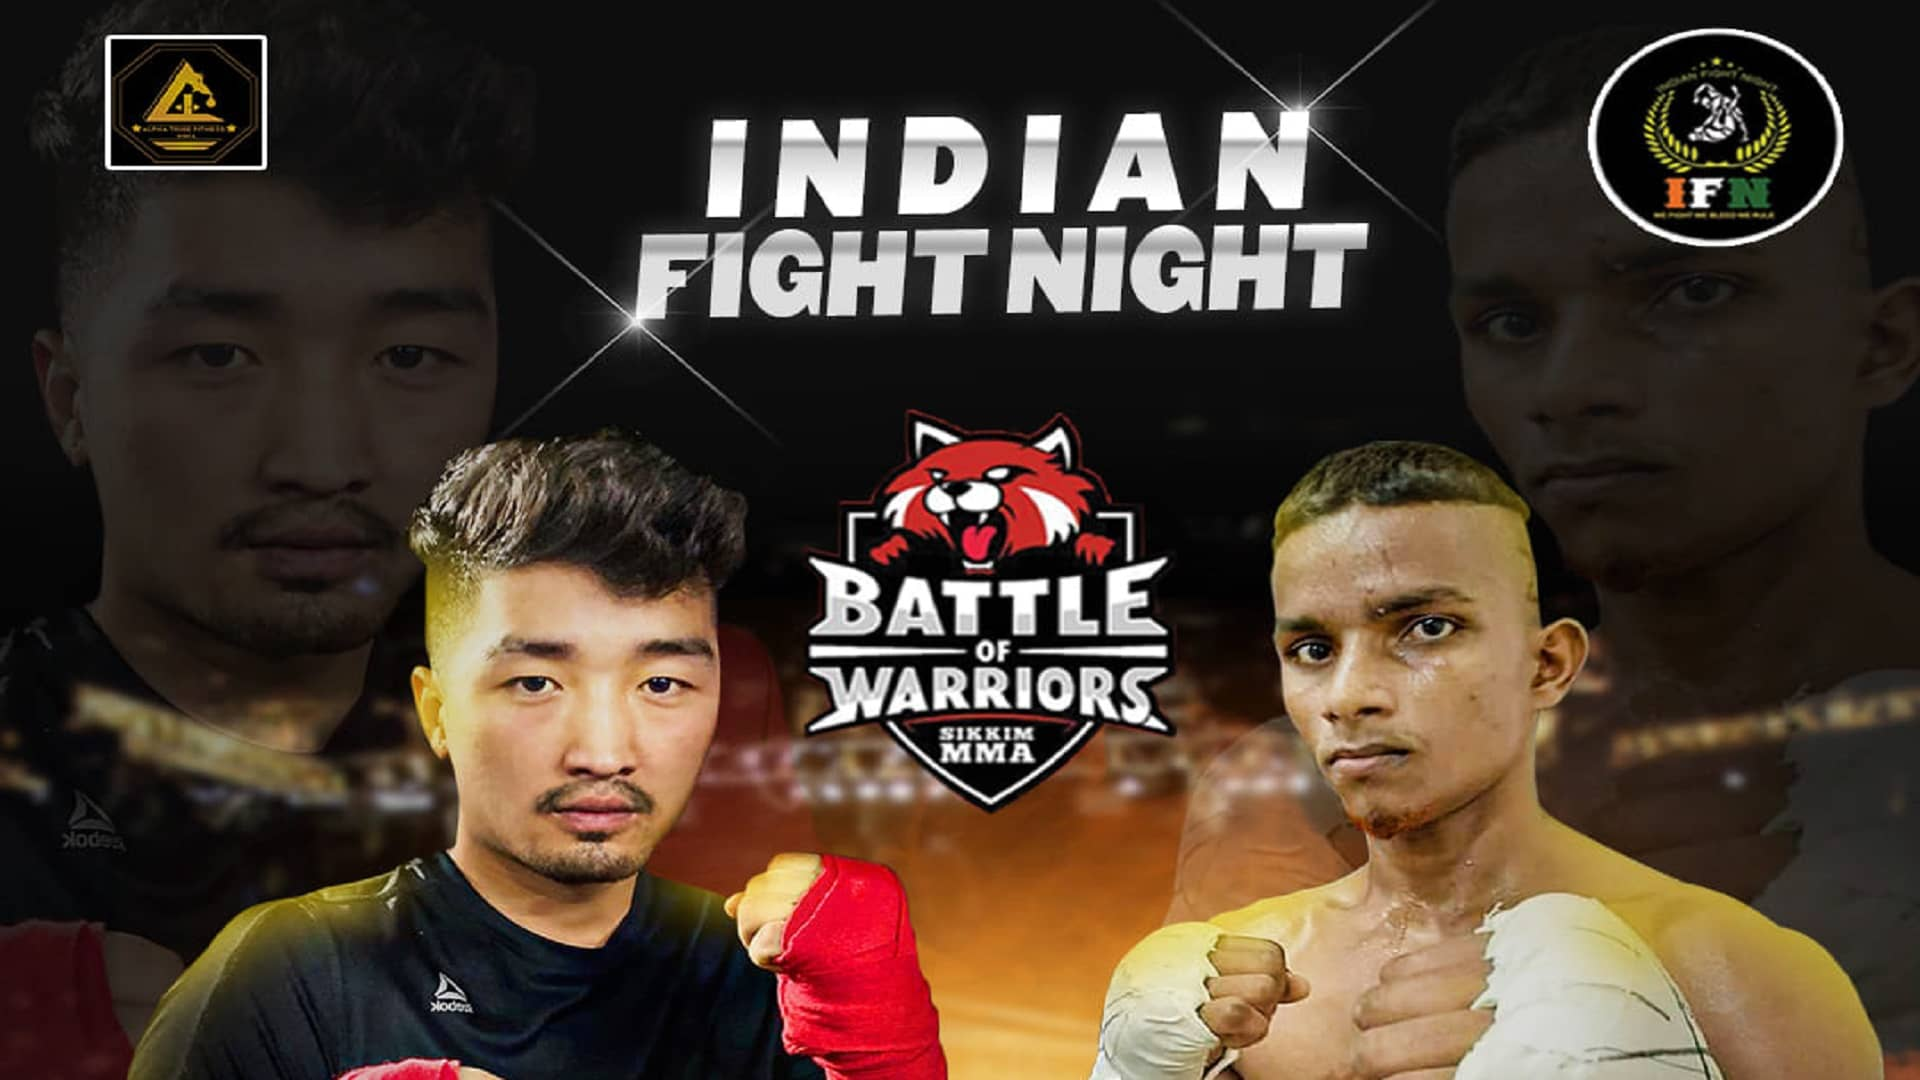 https://lockerroom.in/blog/view/Indian-Fight-Night-Sikkim-MMA-Postponed